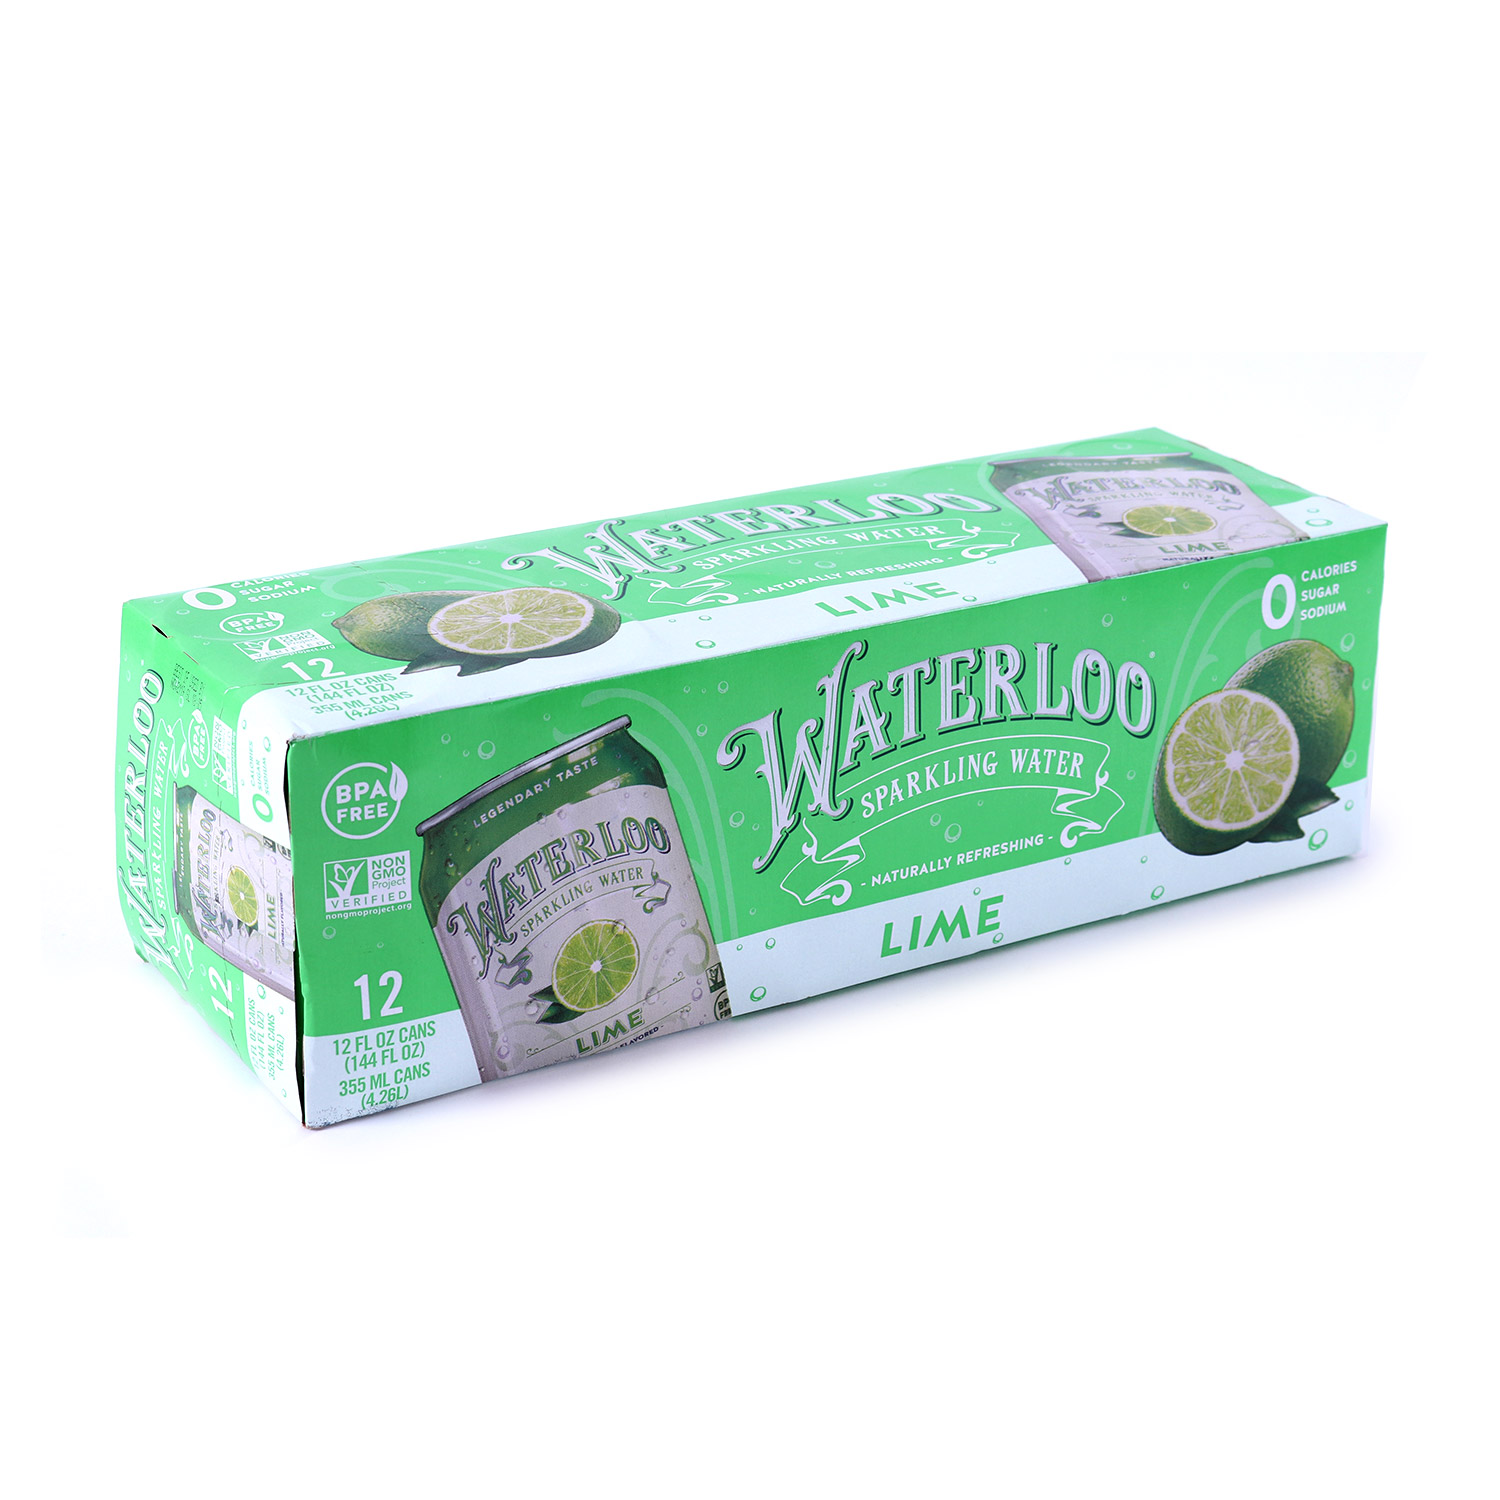 Sparkling Water, Lime-Case